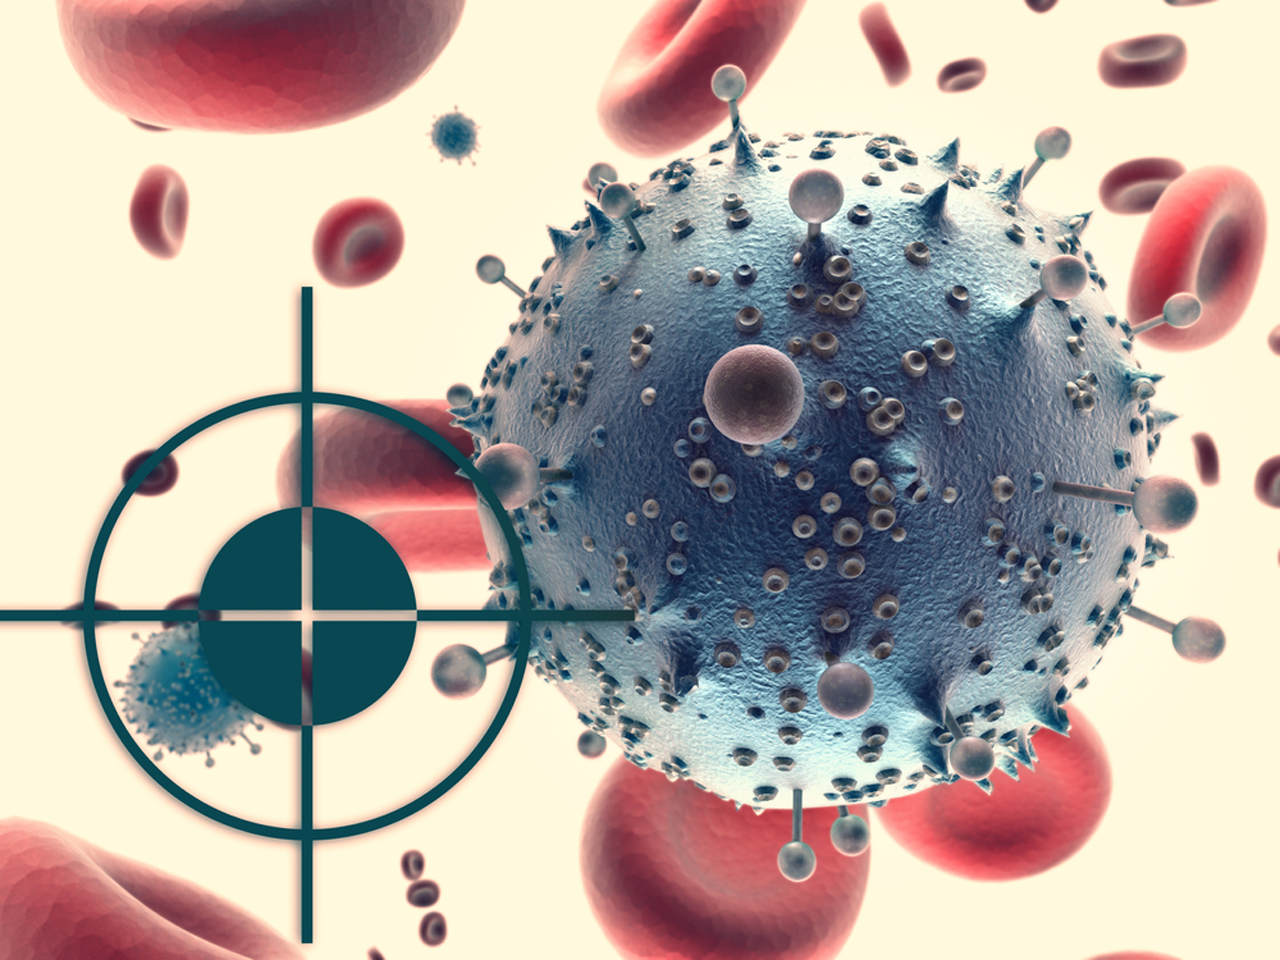 What Is Targeted Cancer Therapy?